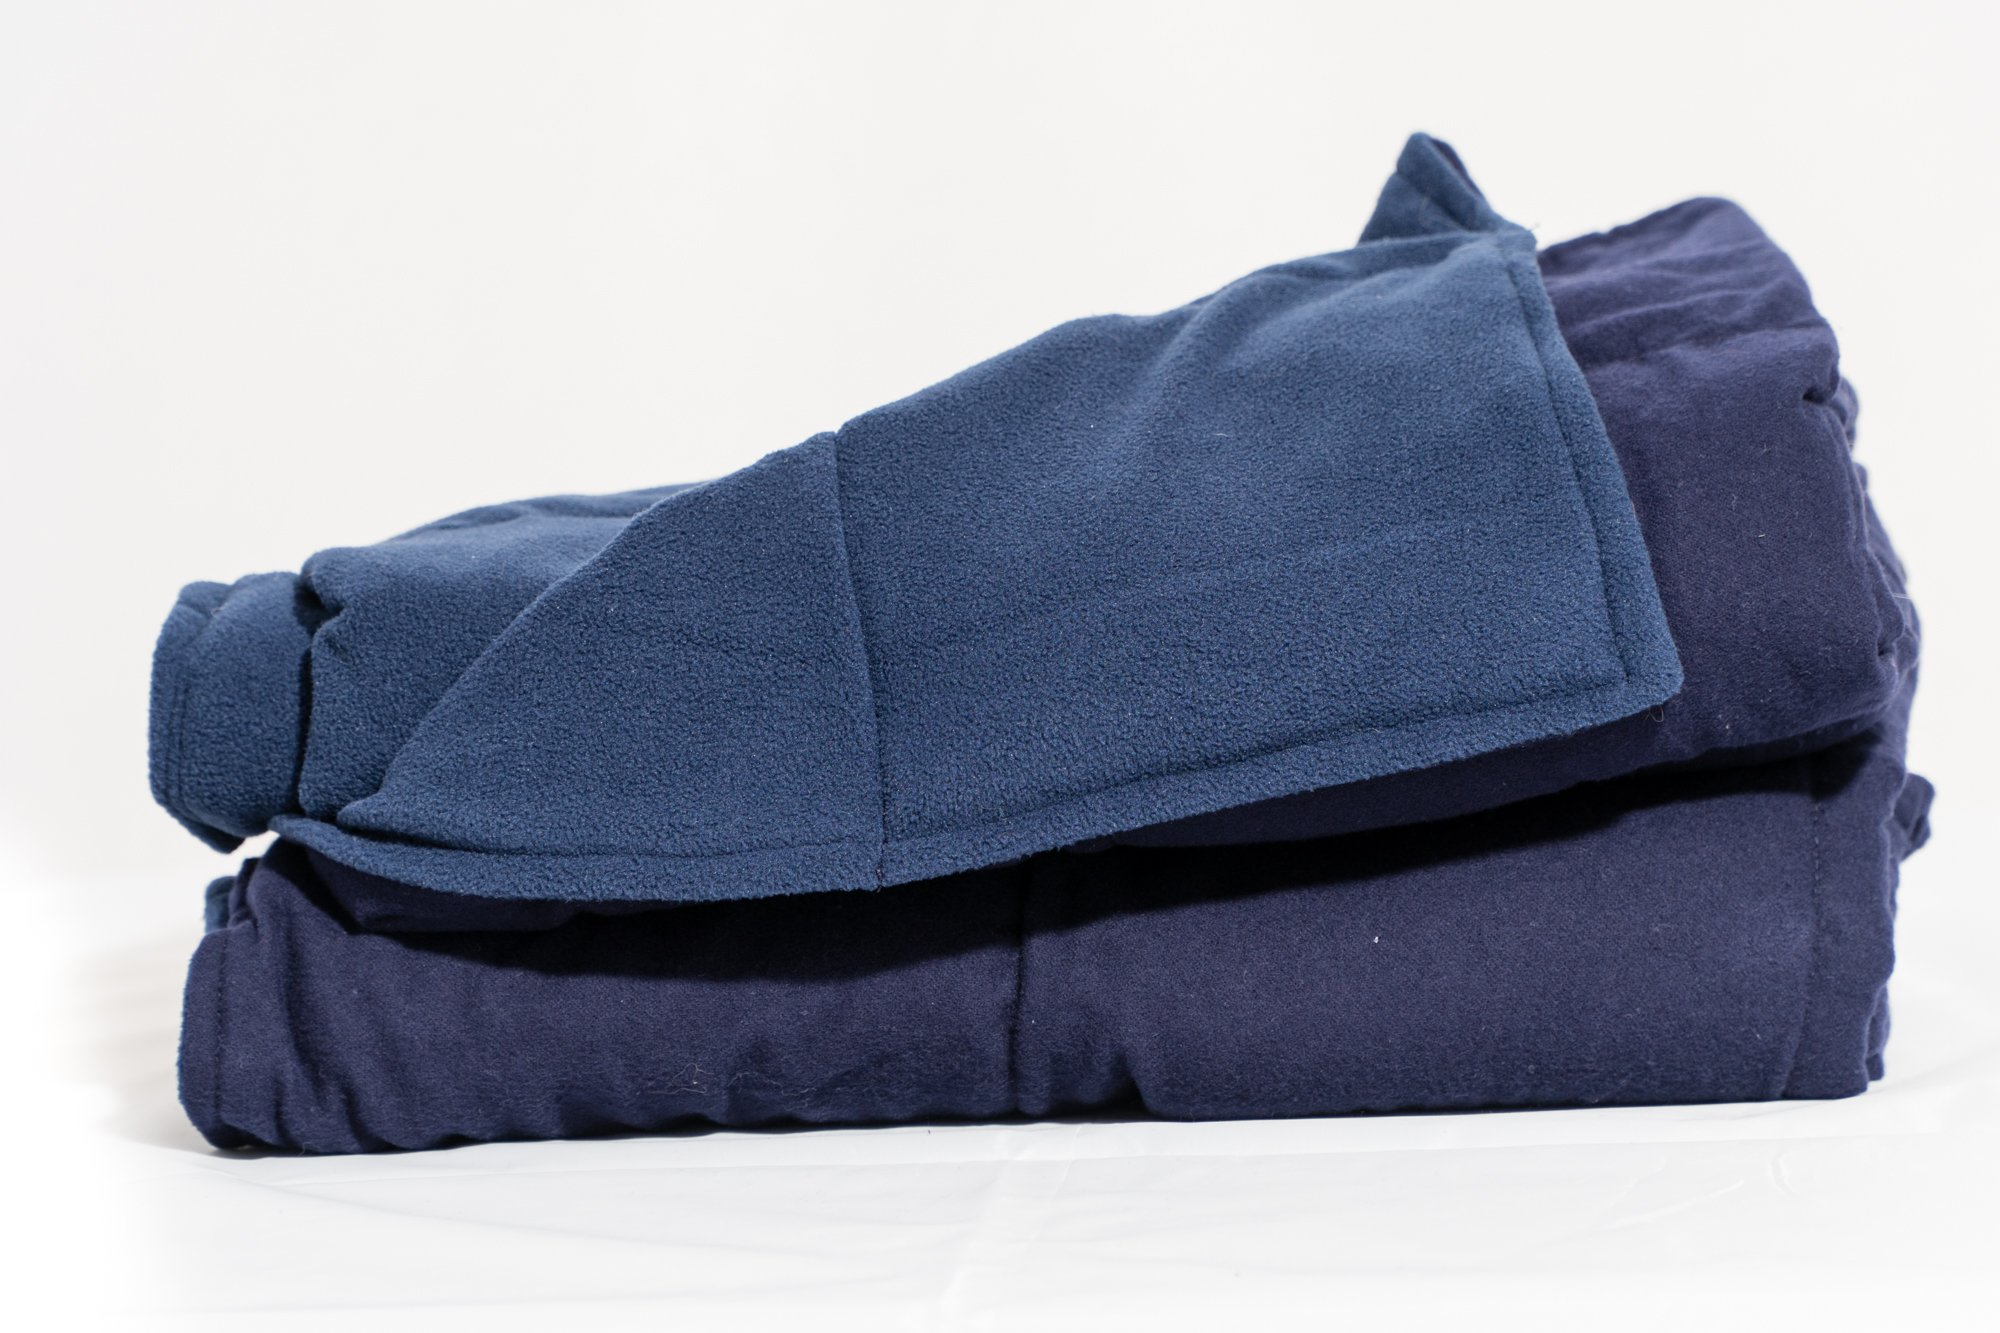 Original Therapeutic Weighted Blanket-Deep Pressure-10lb-Calm, Soothe, Children and Teens on Autism Spectrum, Aspergers, Sensory Processing Disorder, Restless Leg Syndrome. (41''x60'' 10lb)